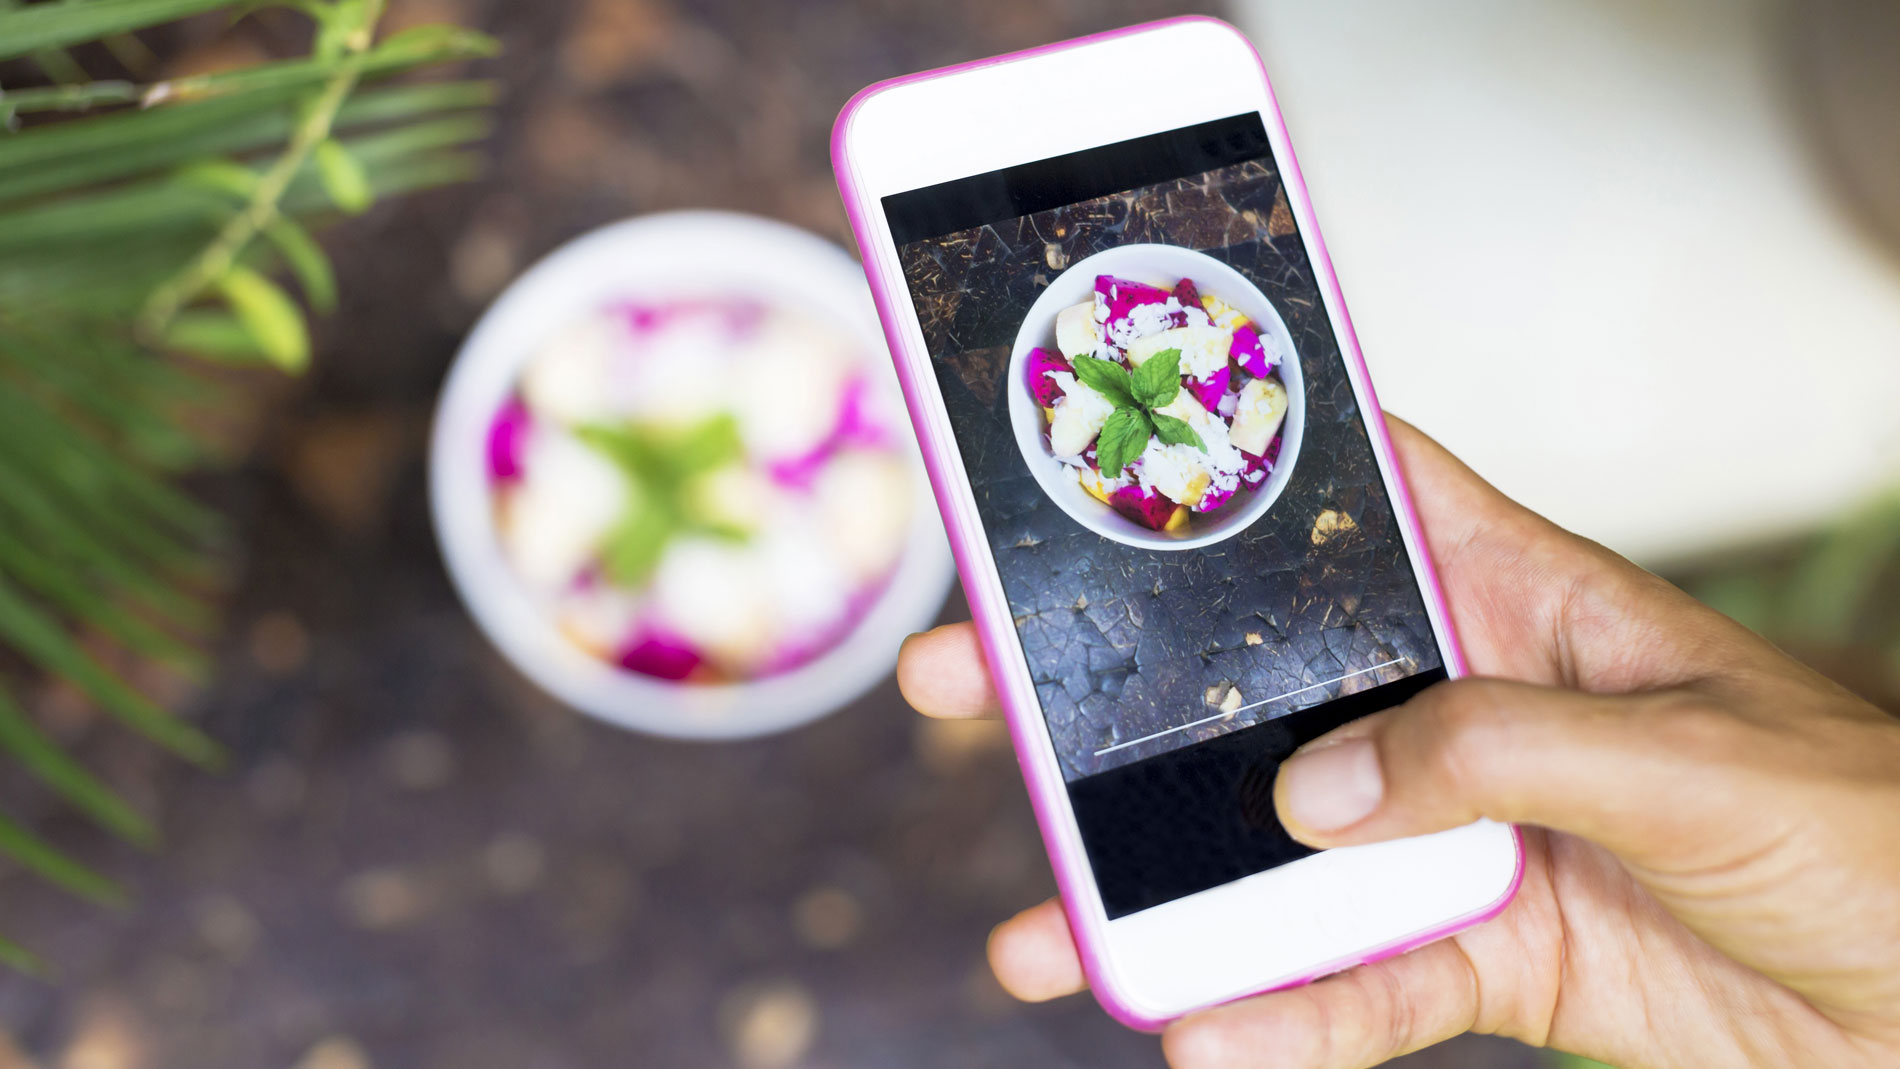 How to Make Dinner Reservations Through Instagram